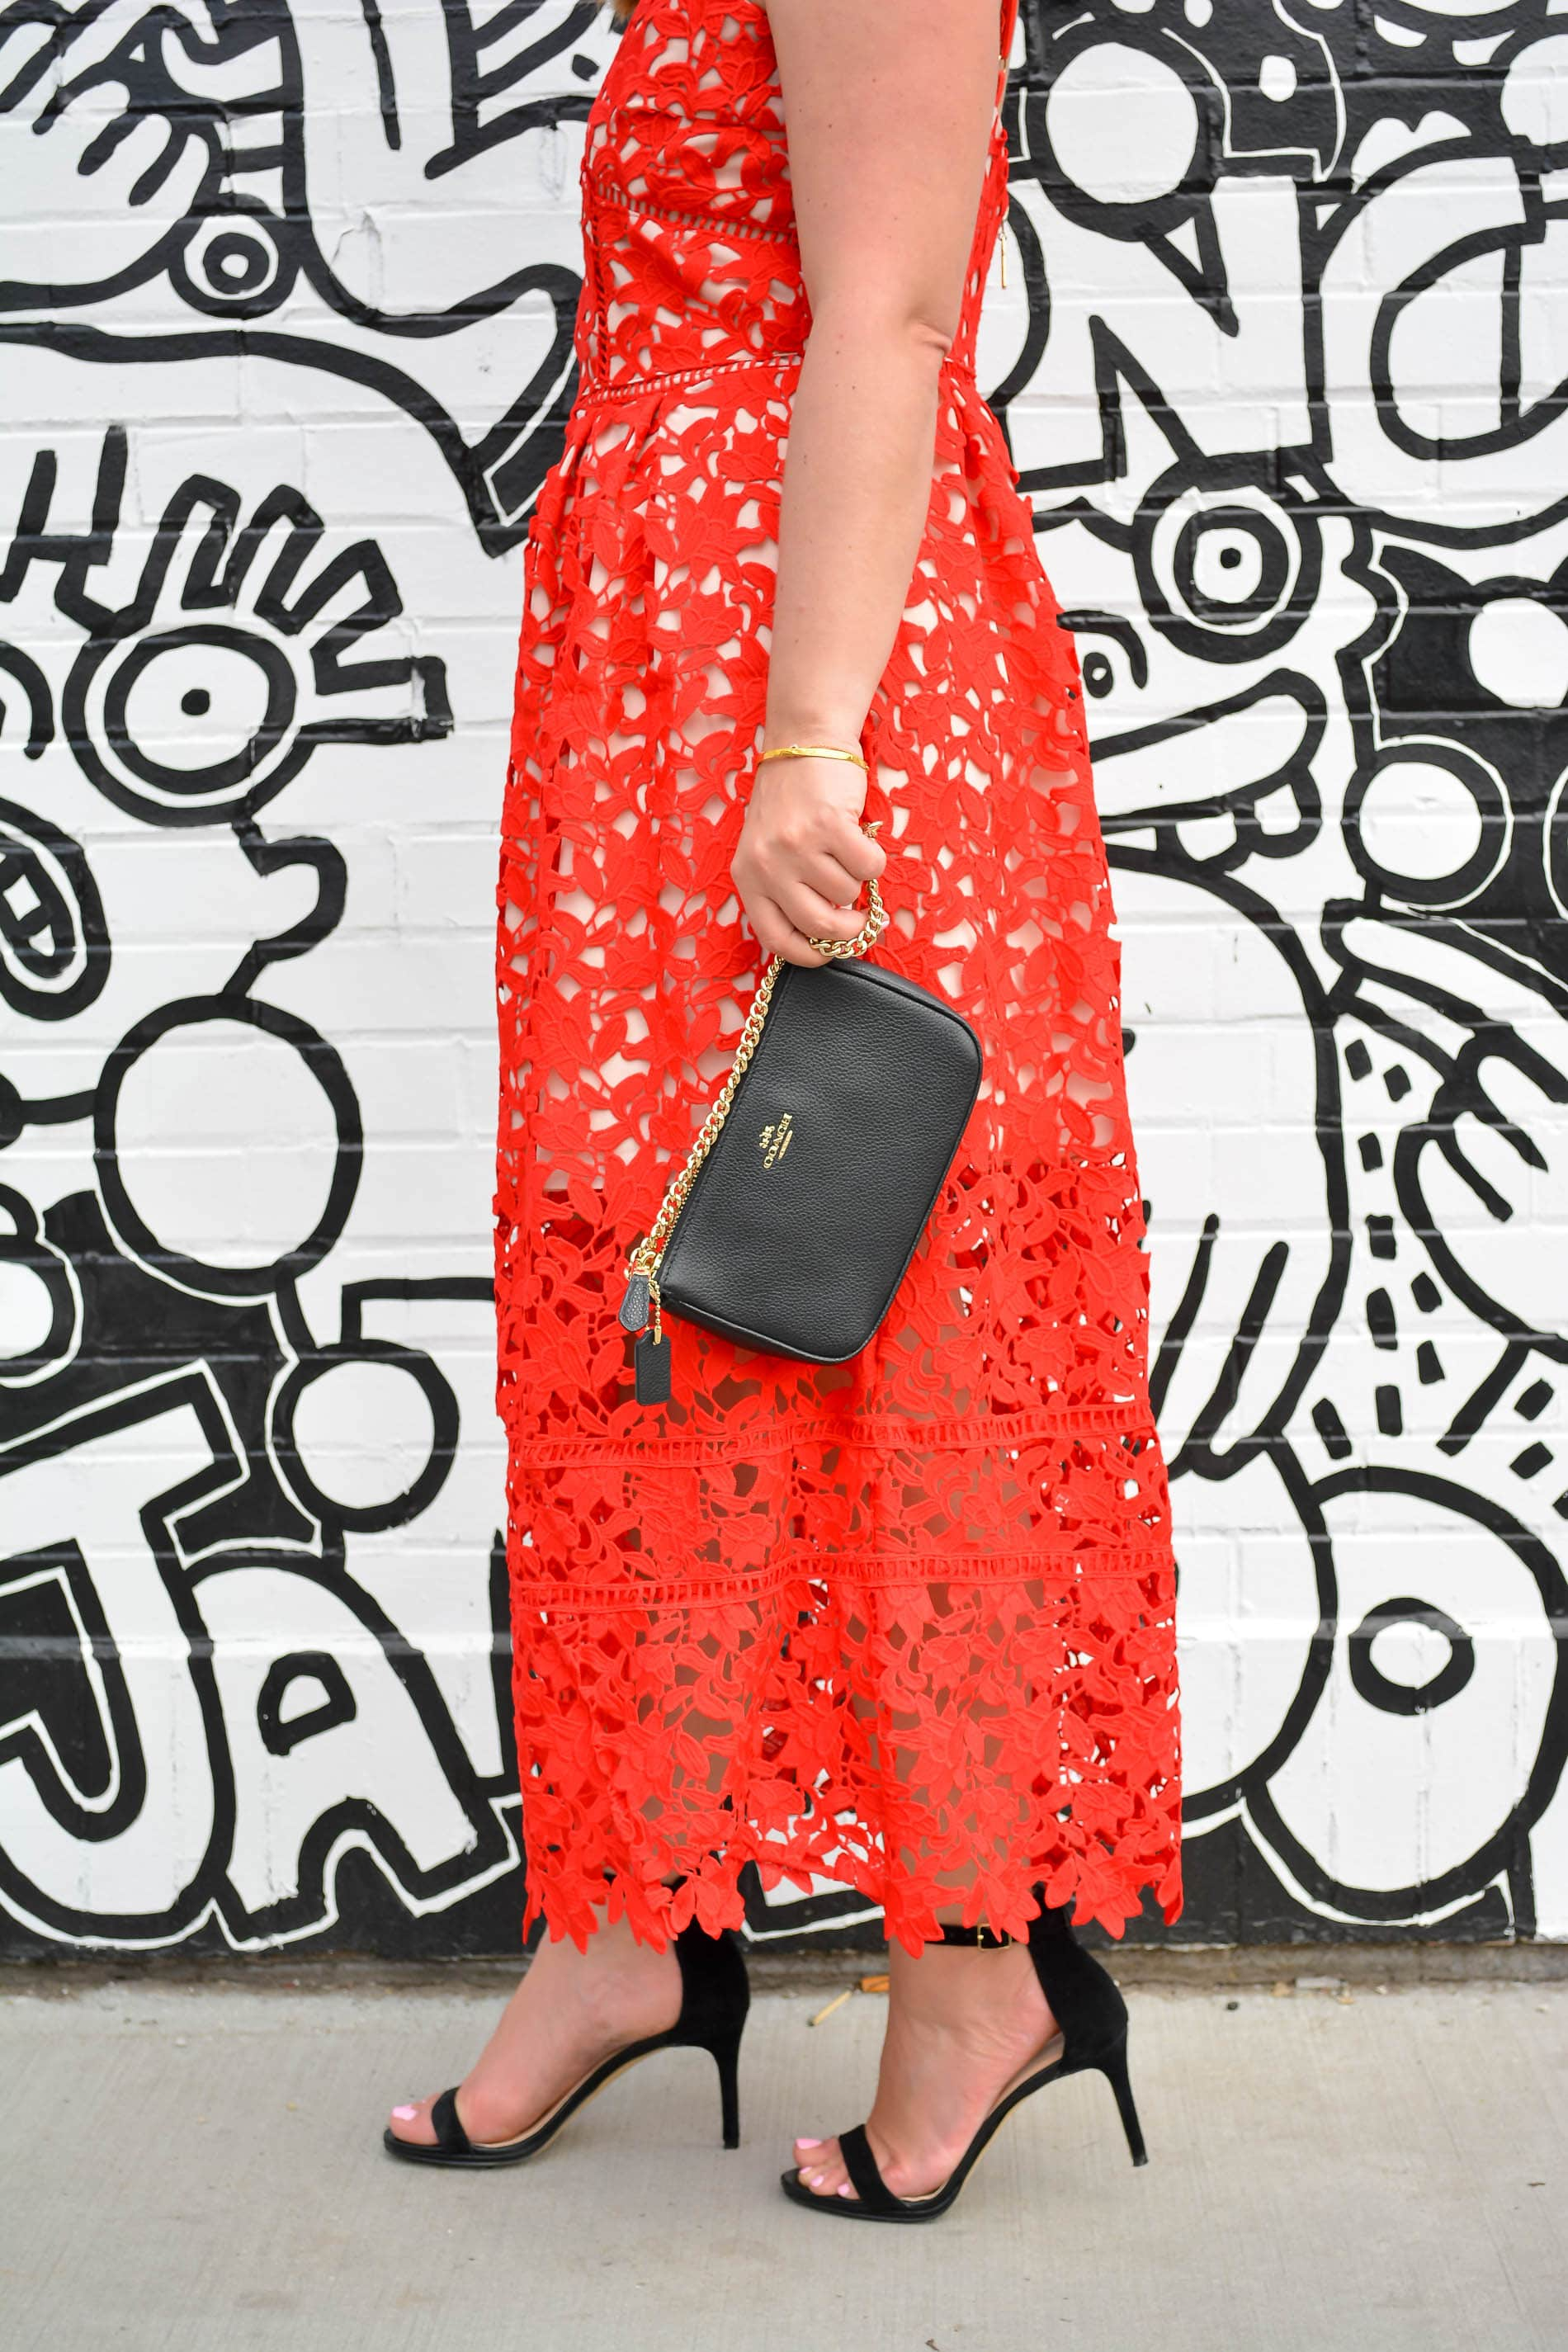 Jolly Chic Red Lace Maxi Dress, Nordstrom Straw hat, Chicago Fashion Blogger, Coach Leather Clutch